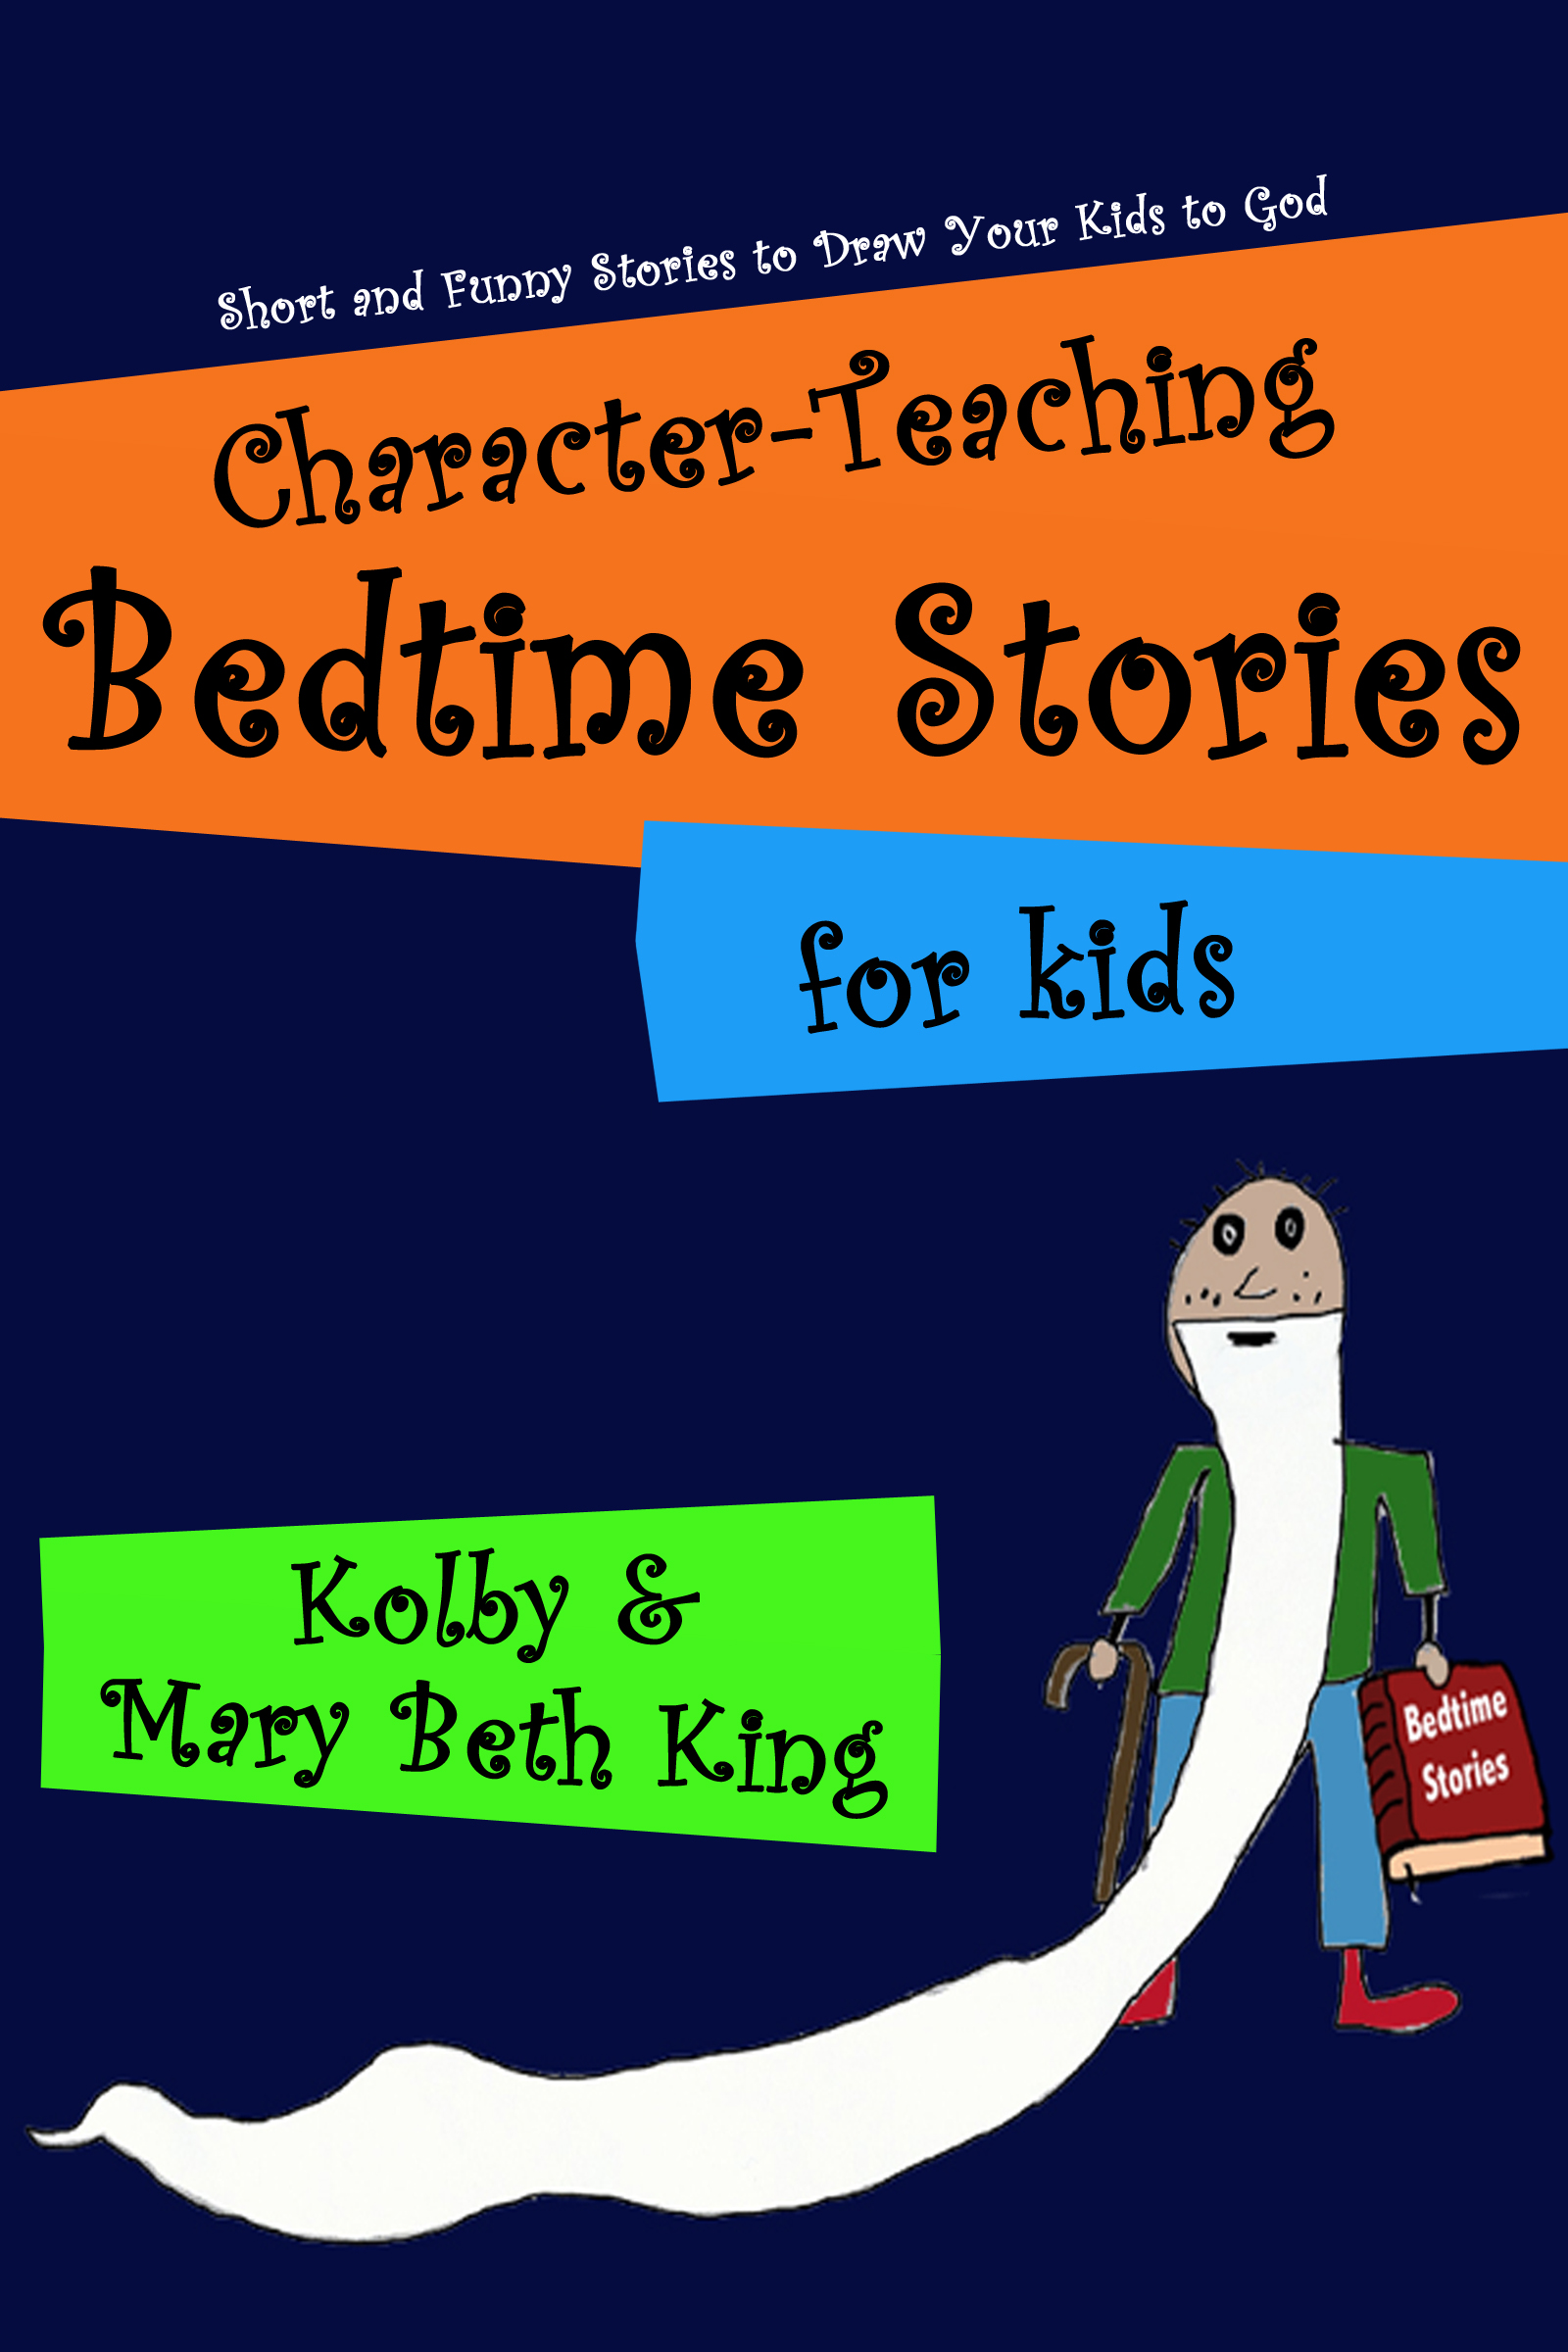 Character-Teaching Bedtime Stories for Kids, an Ebook by Kolby & Mary Beth  King